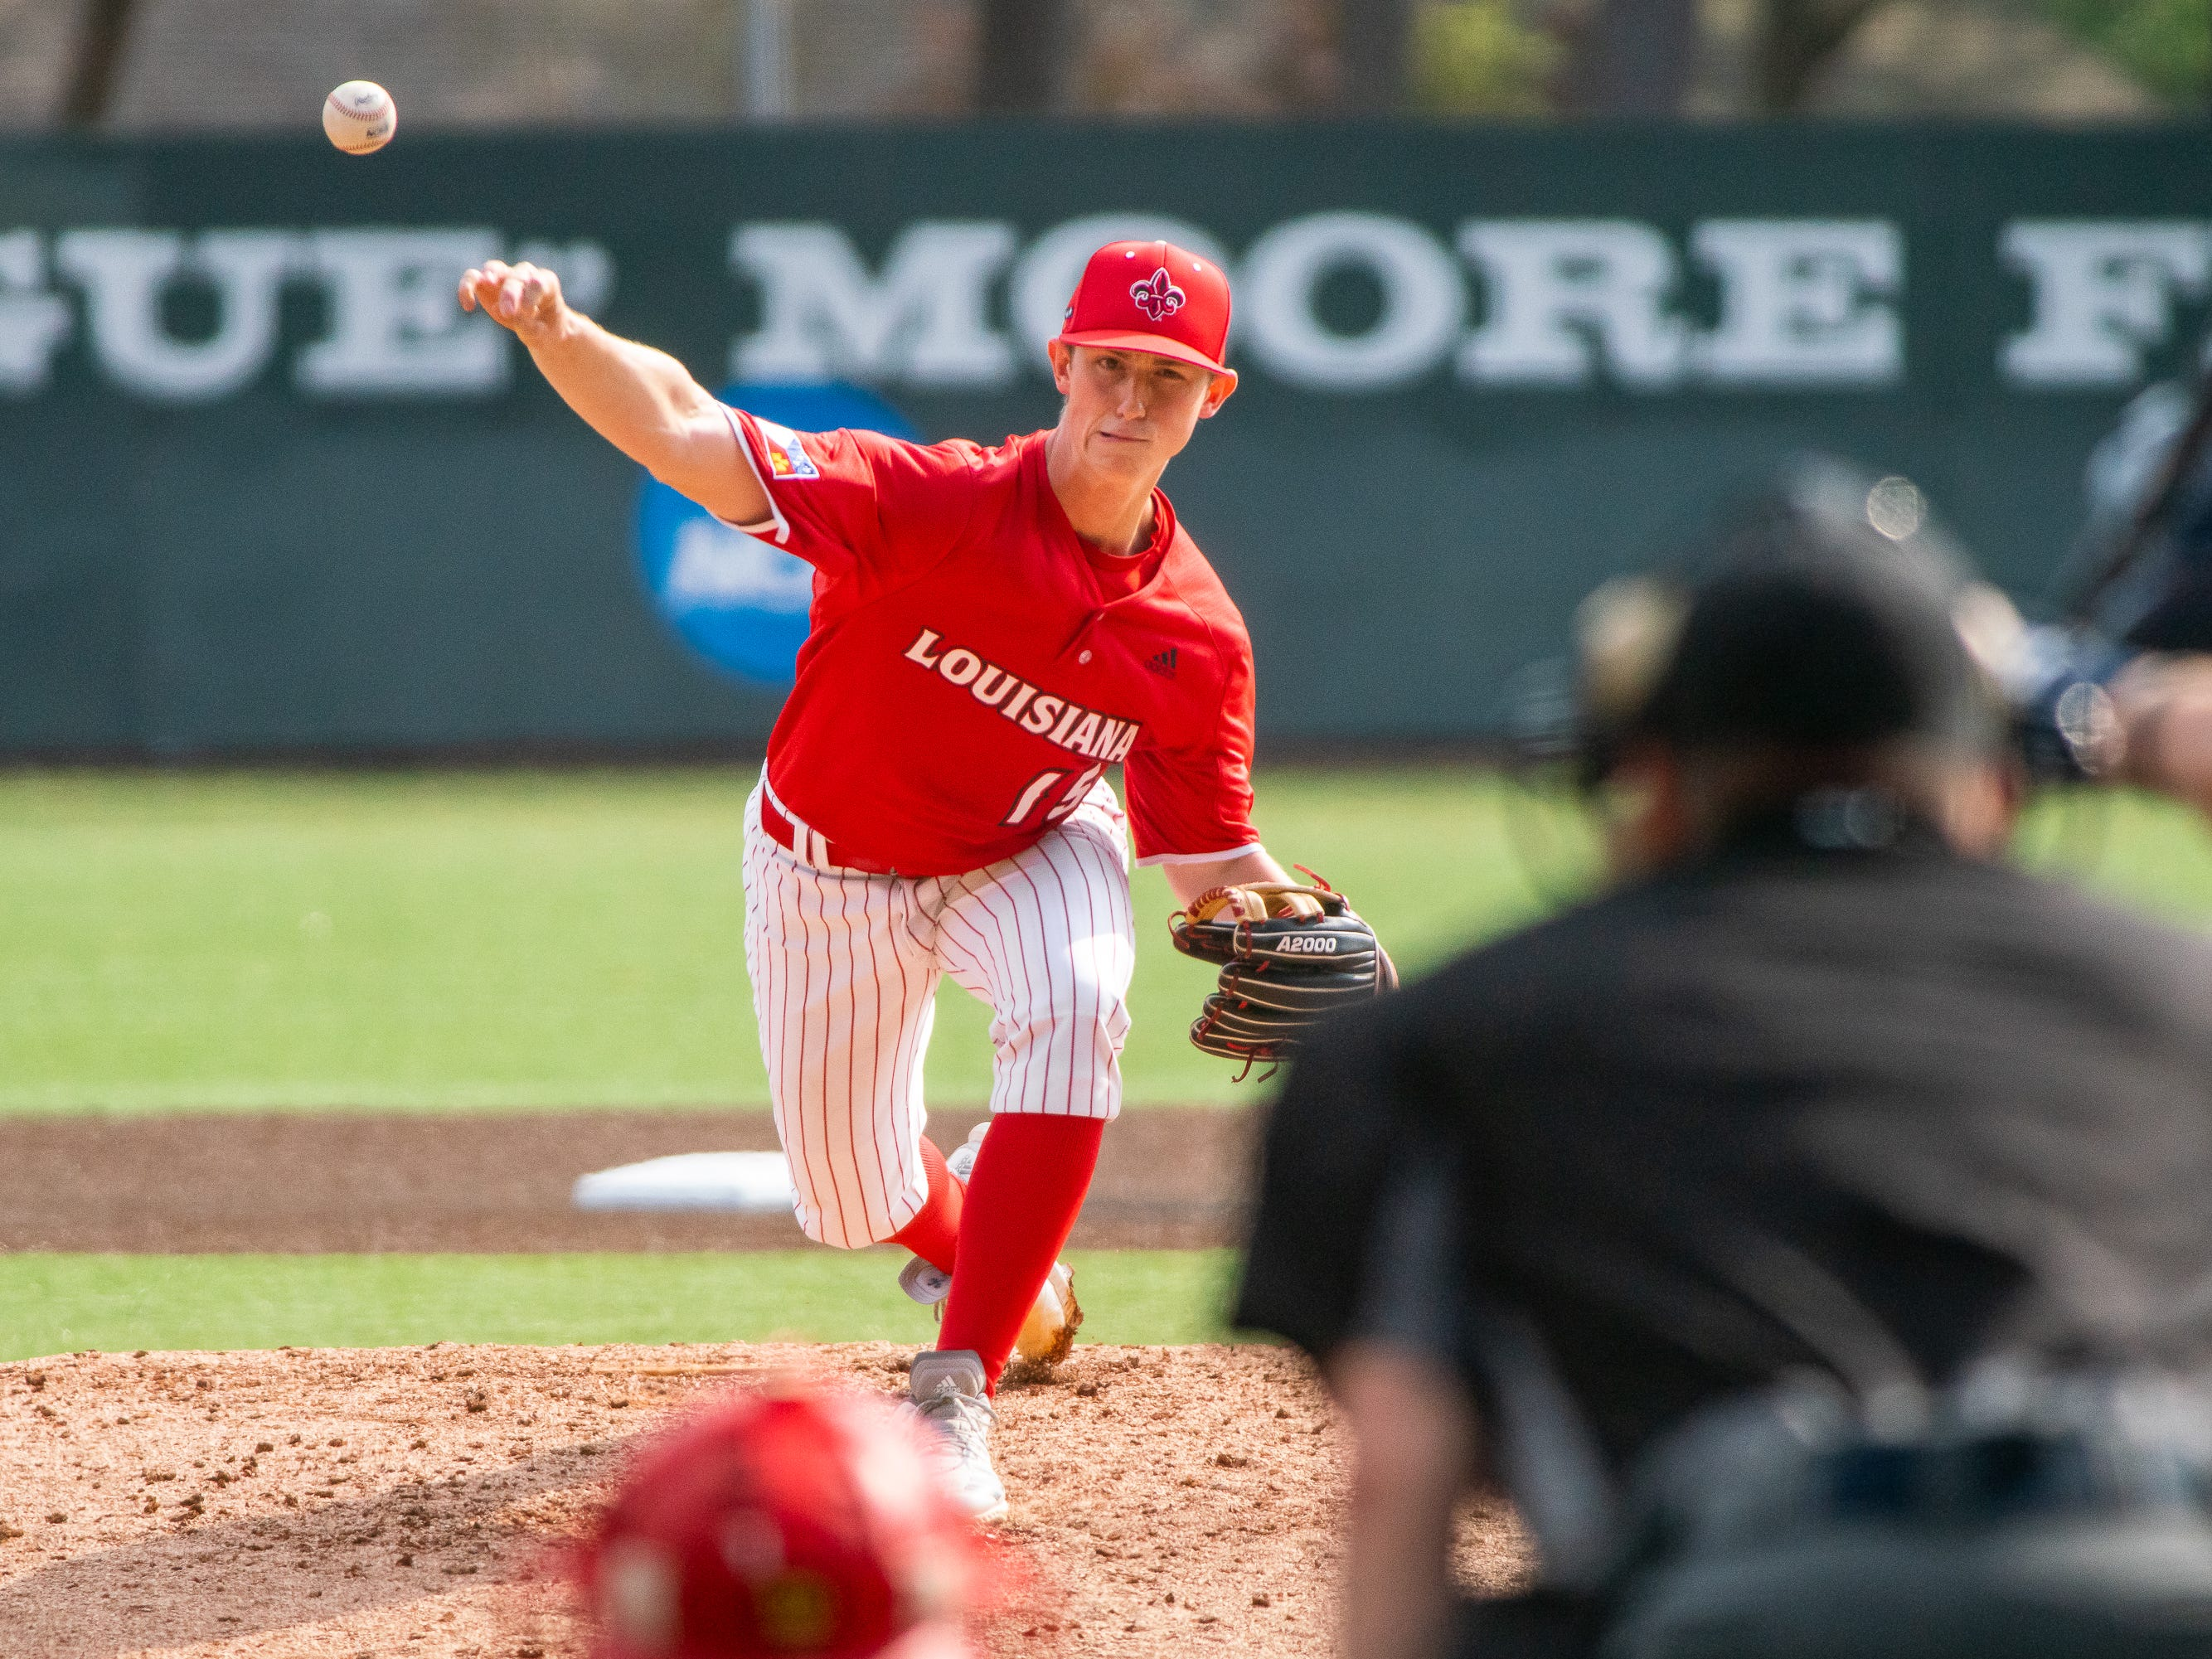 UL's Jacob Shultz throws a pitch as the Ragin' Cajuns take on the Loyola-Marymount Lions at M.L. Tigue Moore Field on Saturday, March 9, 2019.